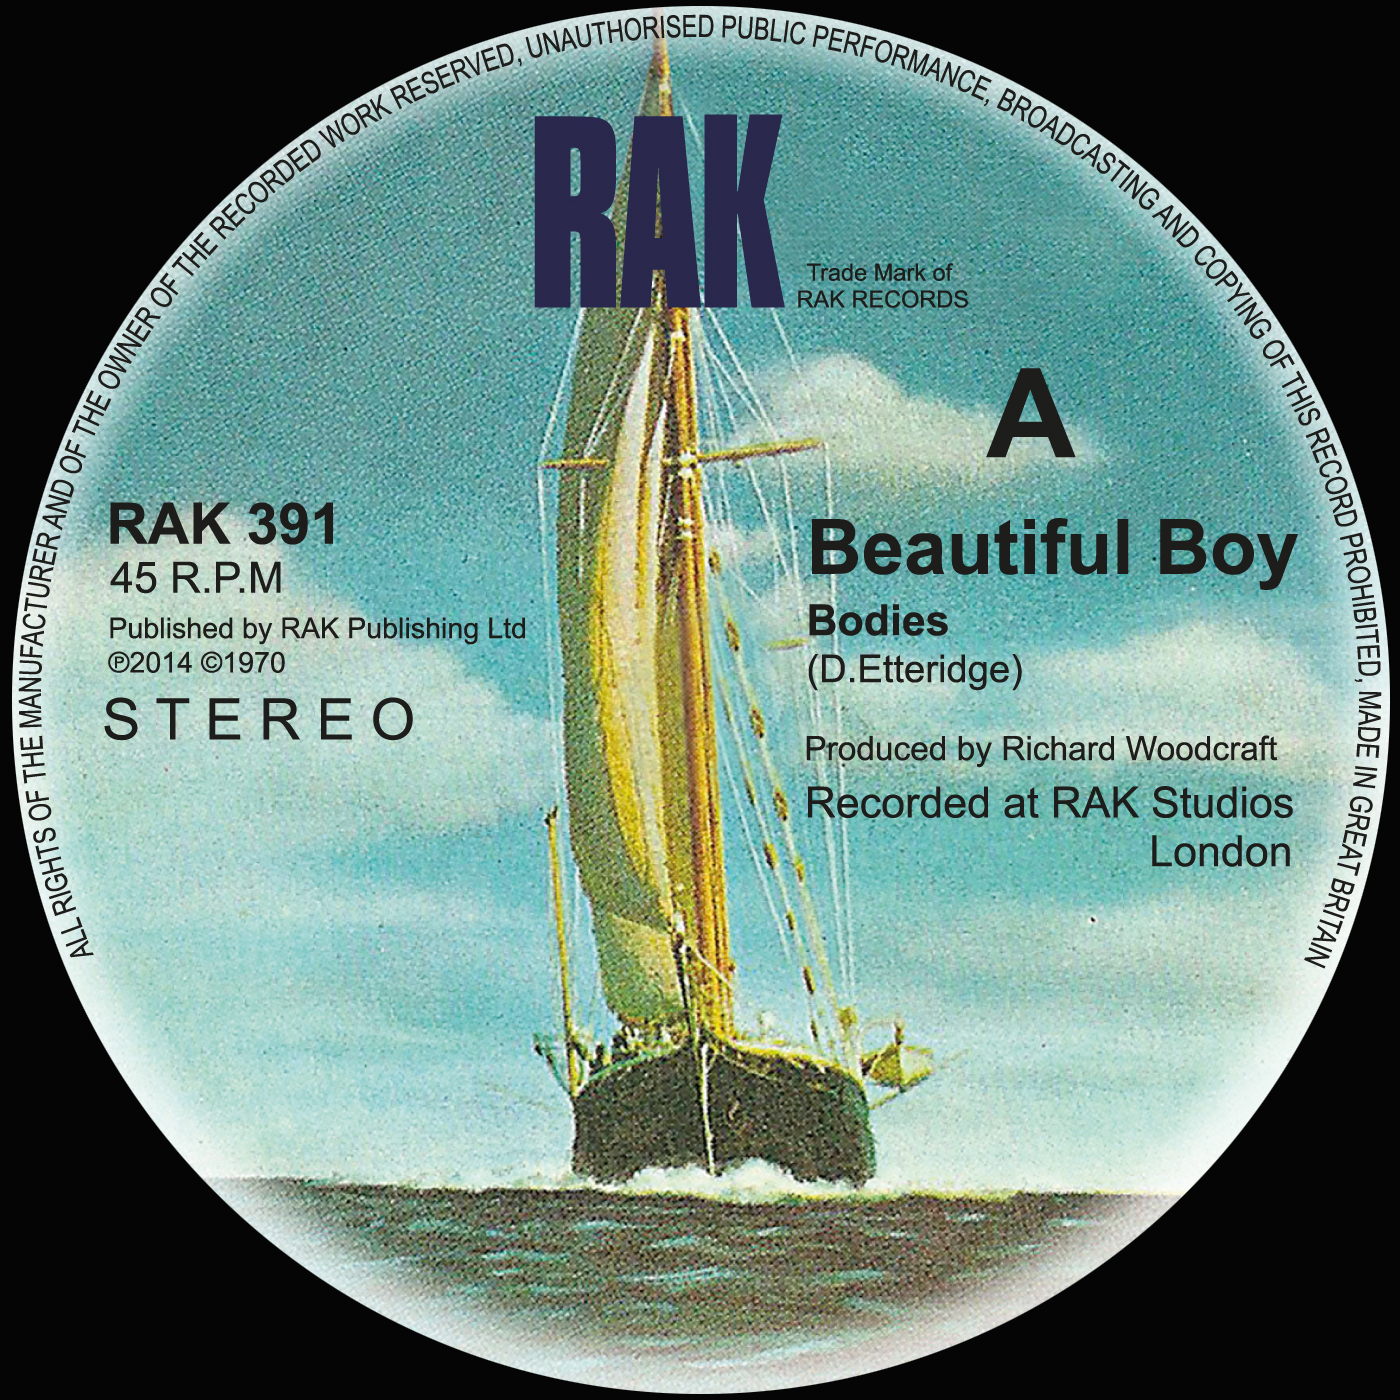 "Beautiful Boy - Bodies / Kids in America - 7"" Vinyl - RAK"